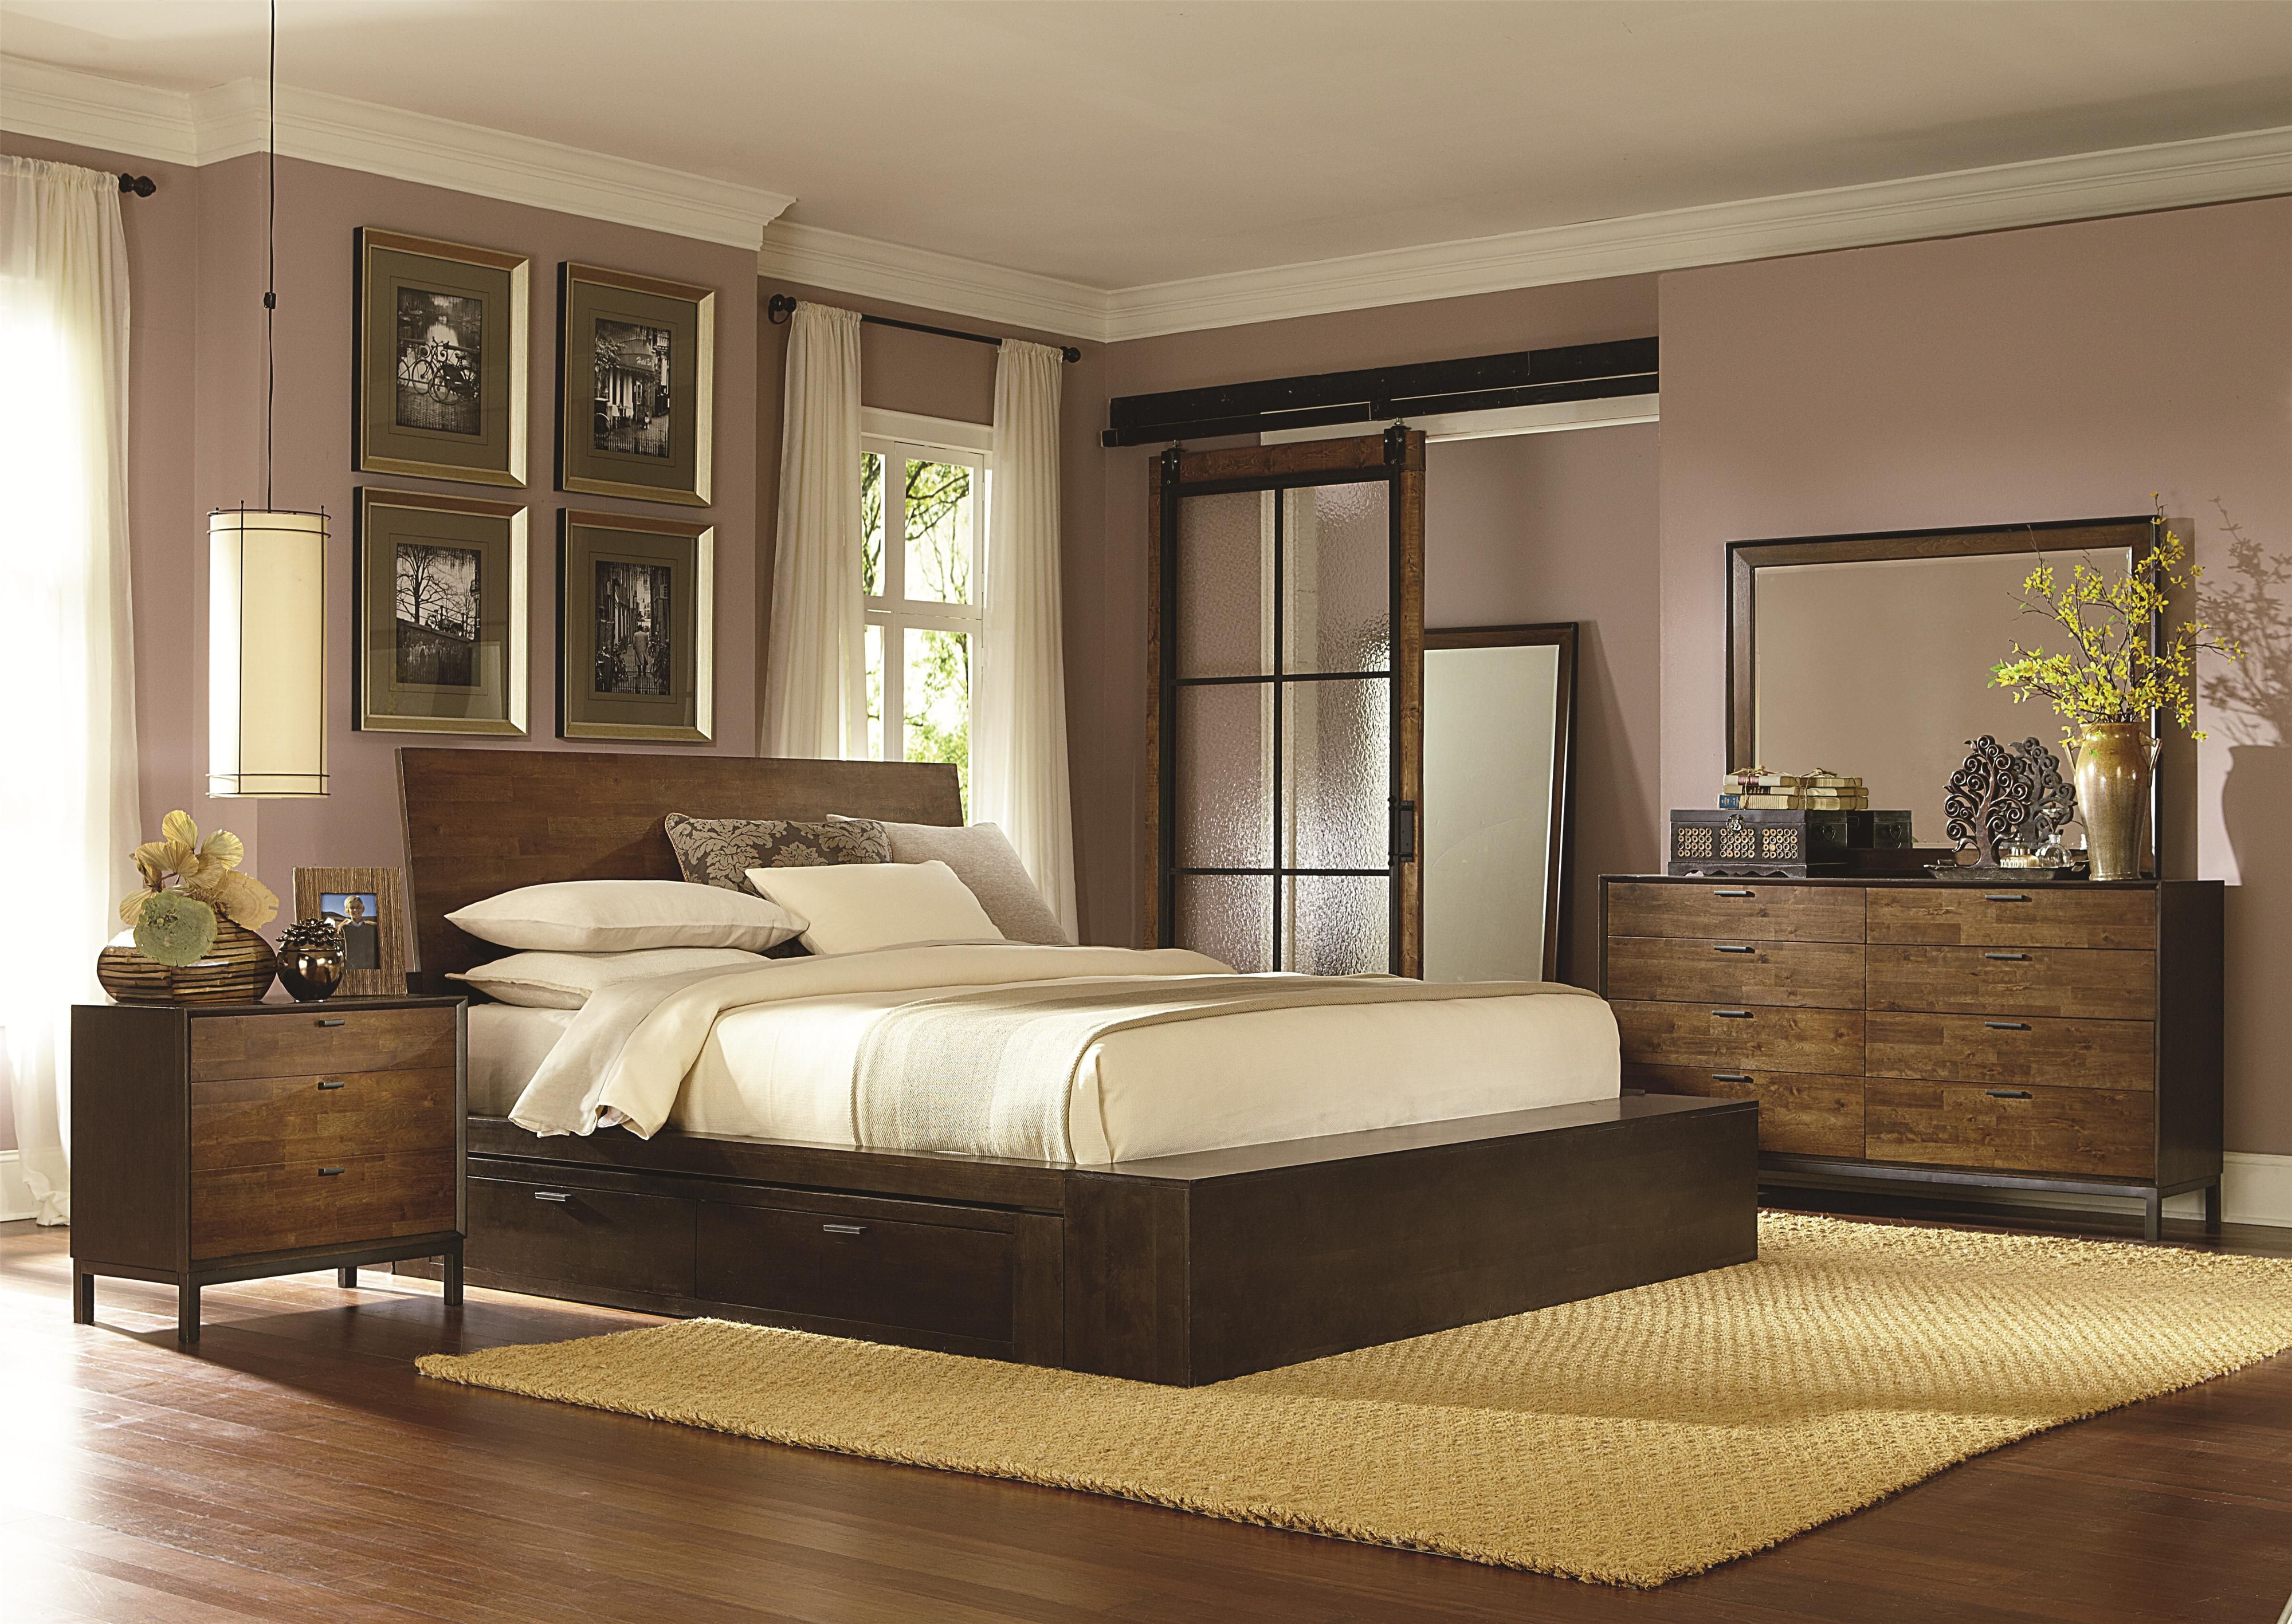 This Beautiful Platform Bed With One Storage Drawer Is The